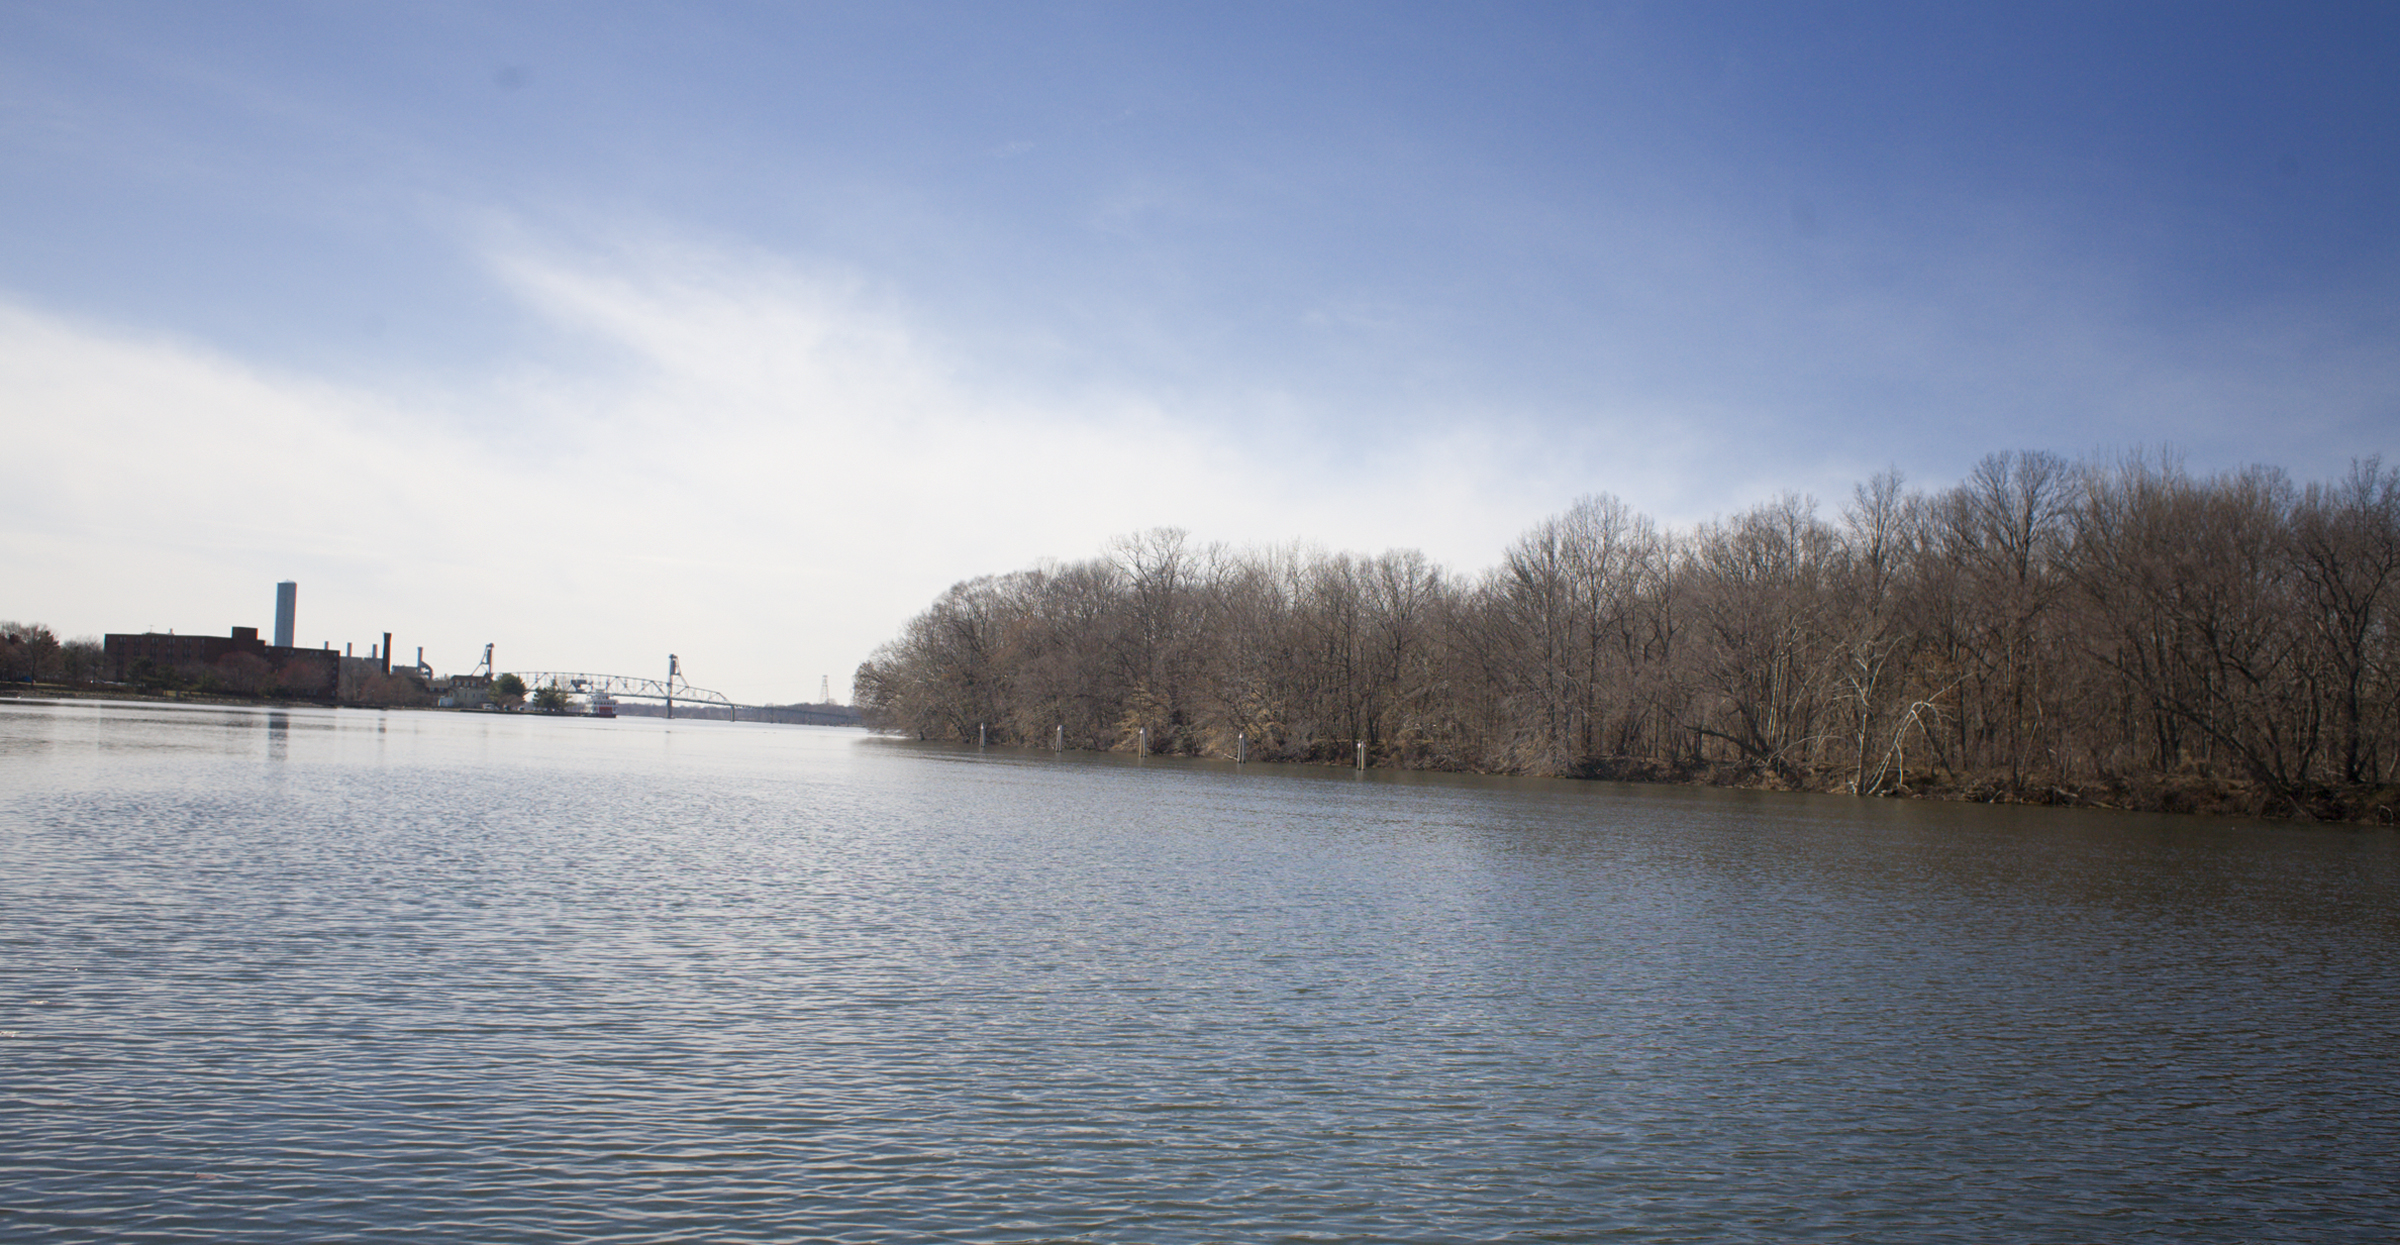 A view of the Delaware River from Burlington City. It includes a look at Burlington Island, a vacation spot for Philadelphians in its early 20th century heyday.